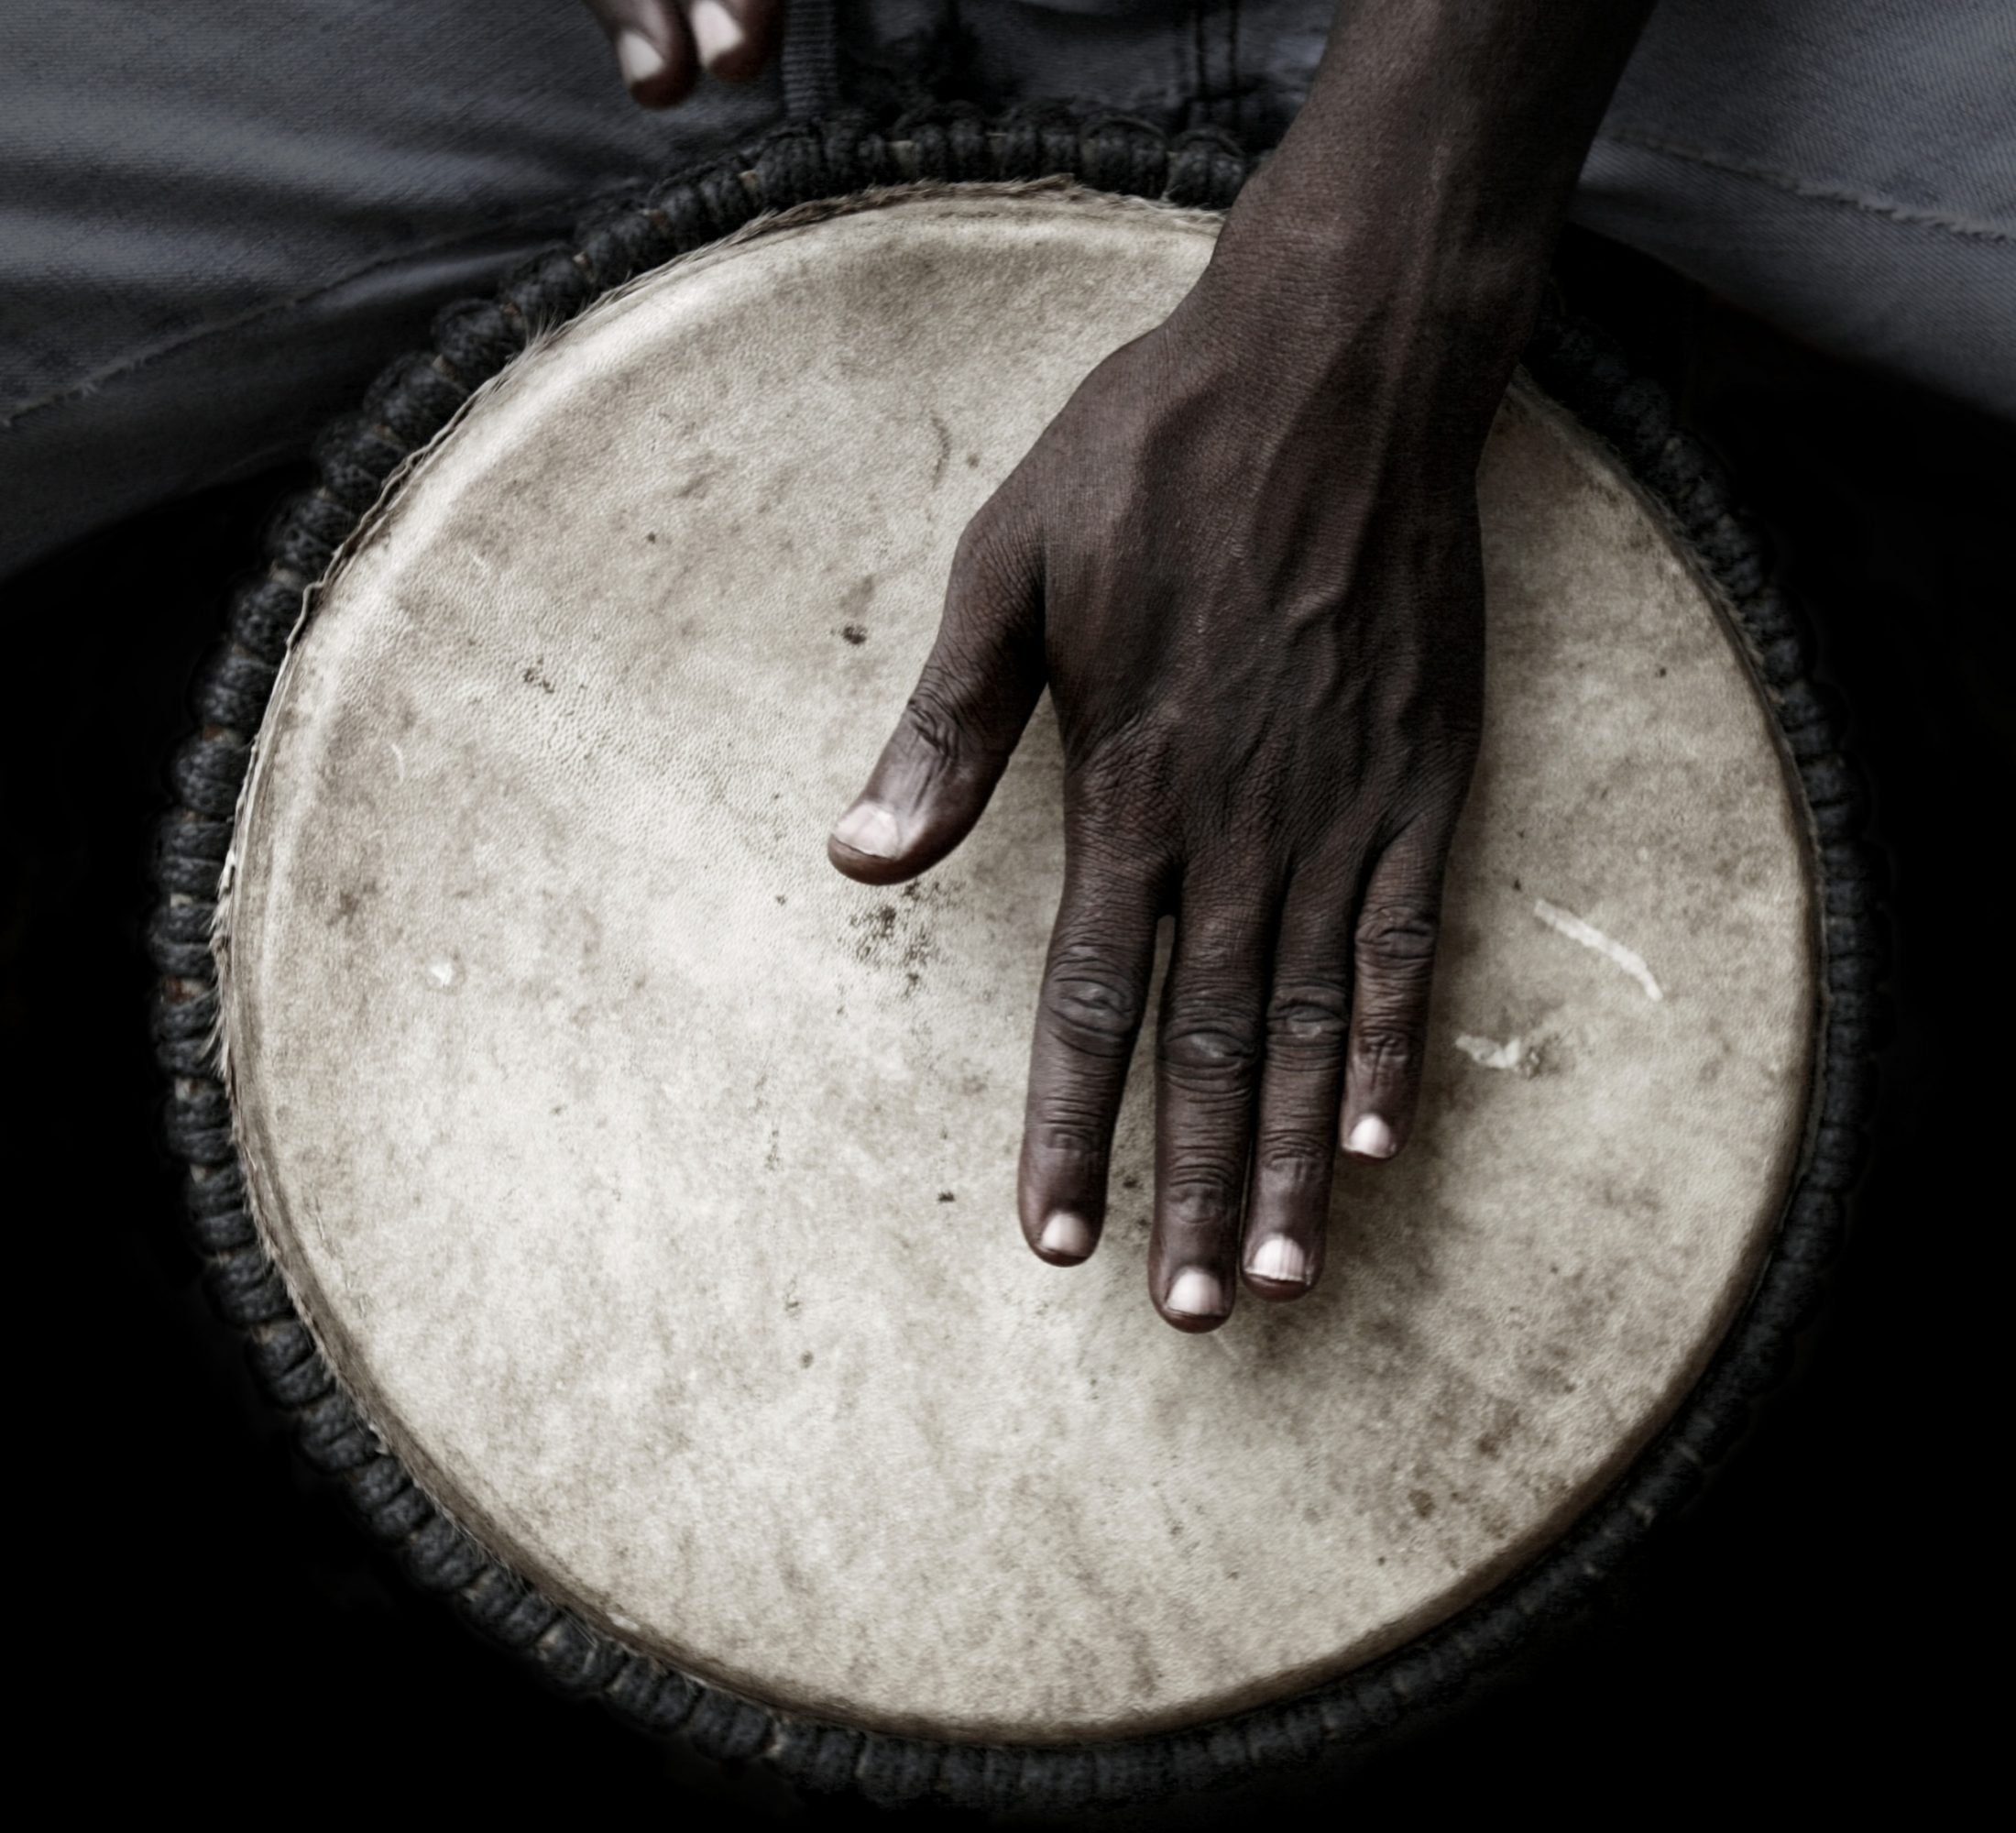 West African man palying djembe.